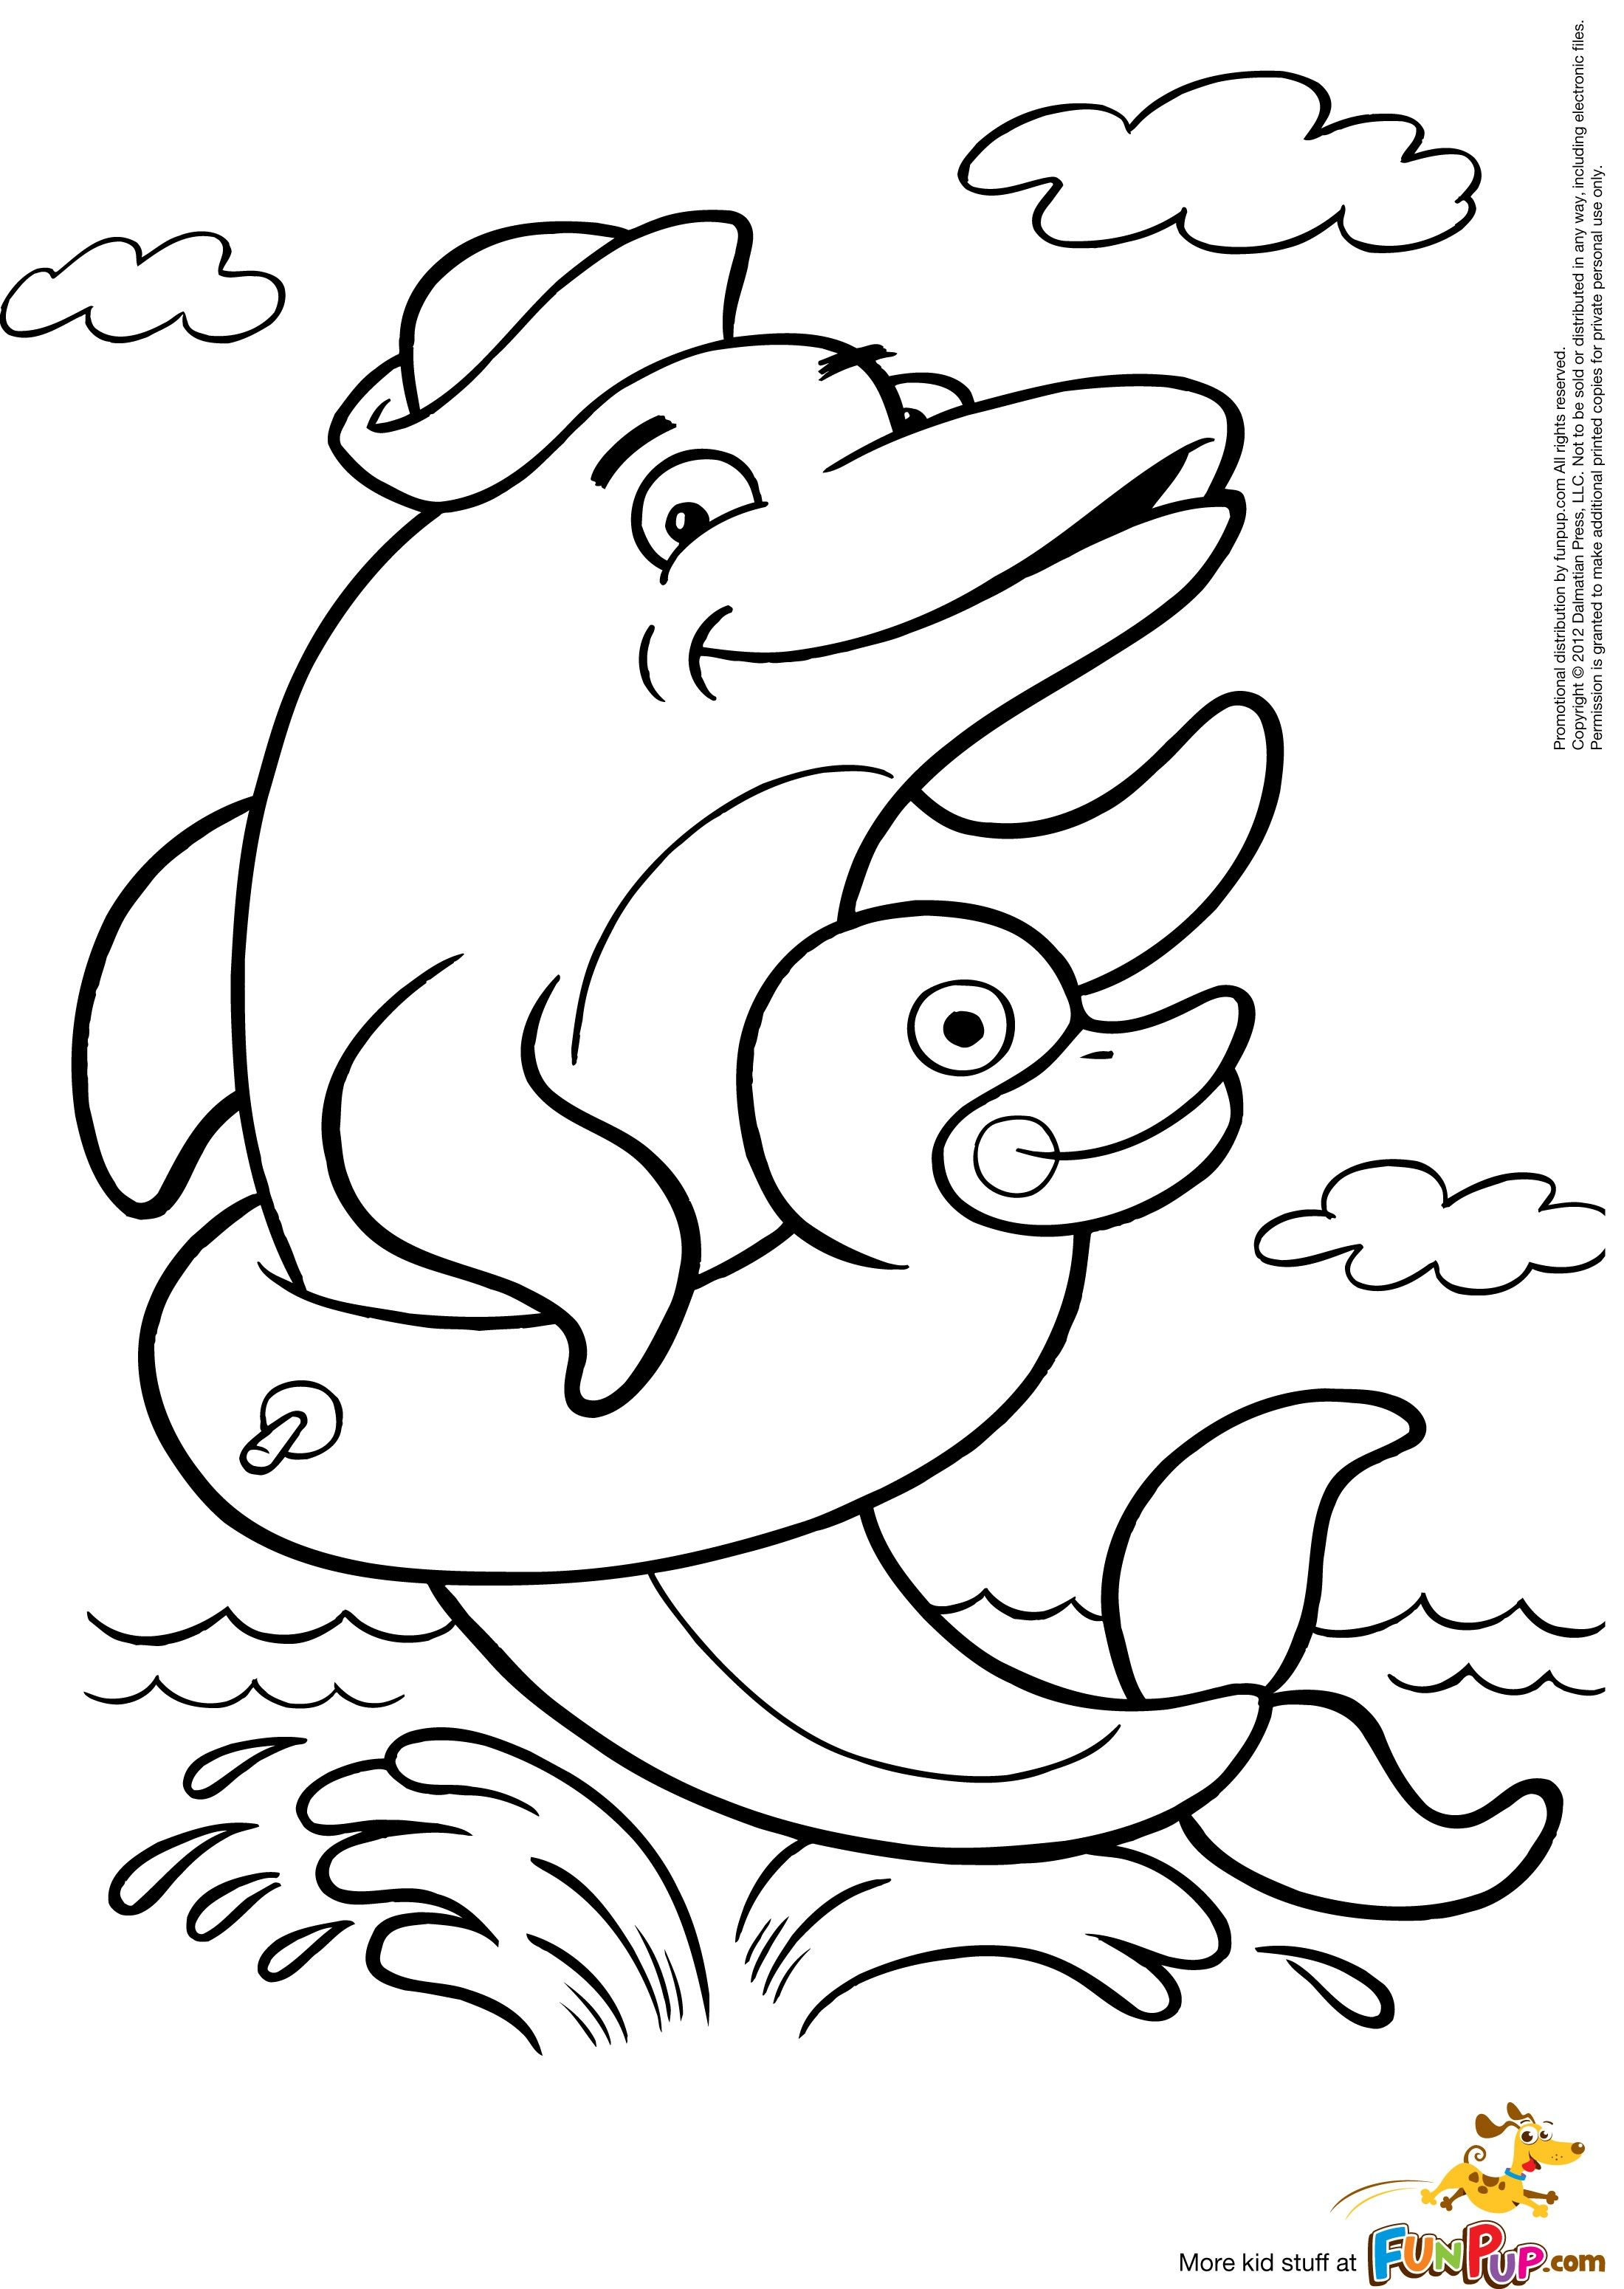 Free dophin Color Pages Printable Yahoo Image Search